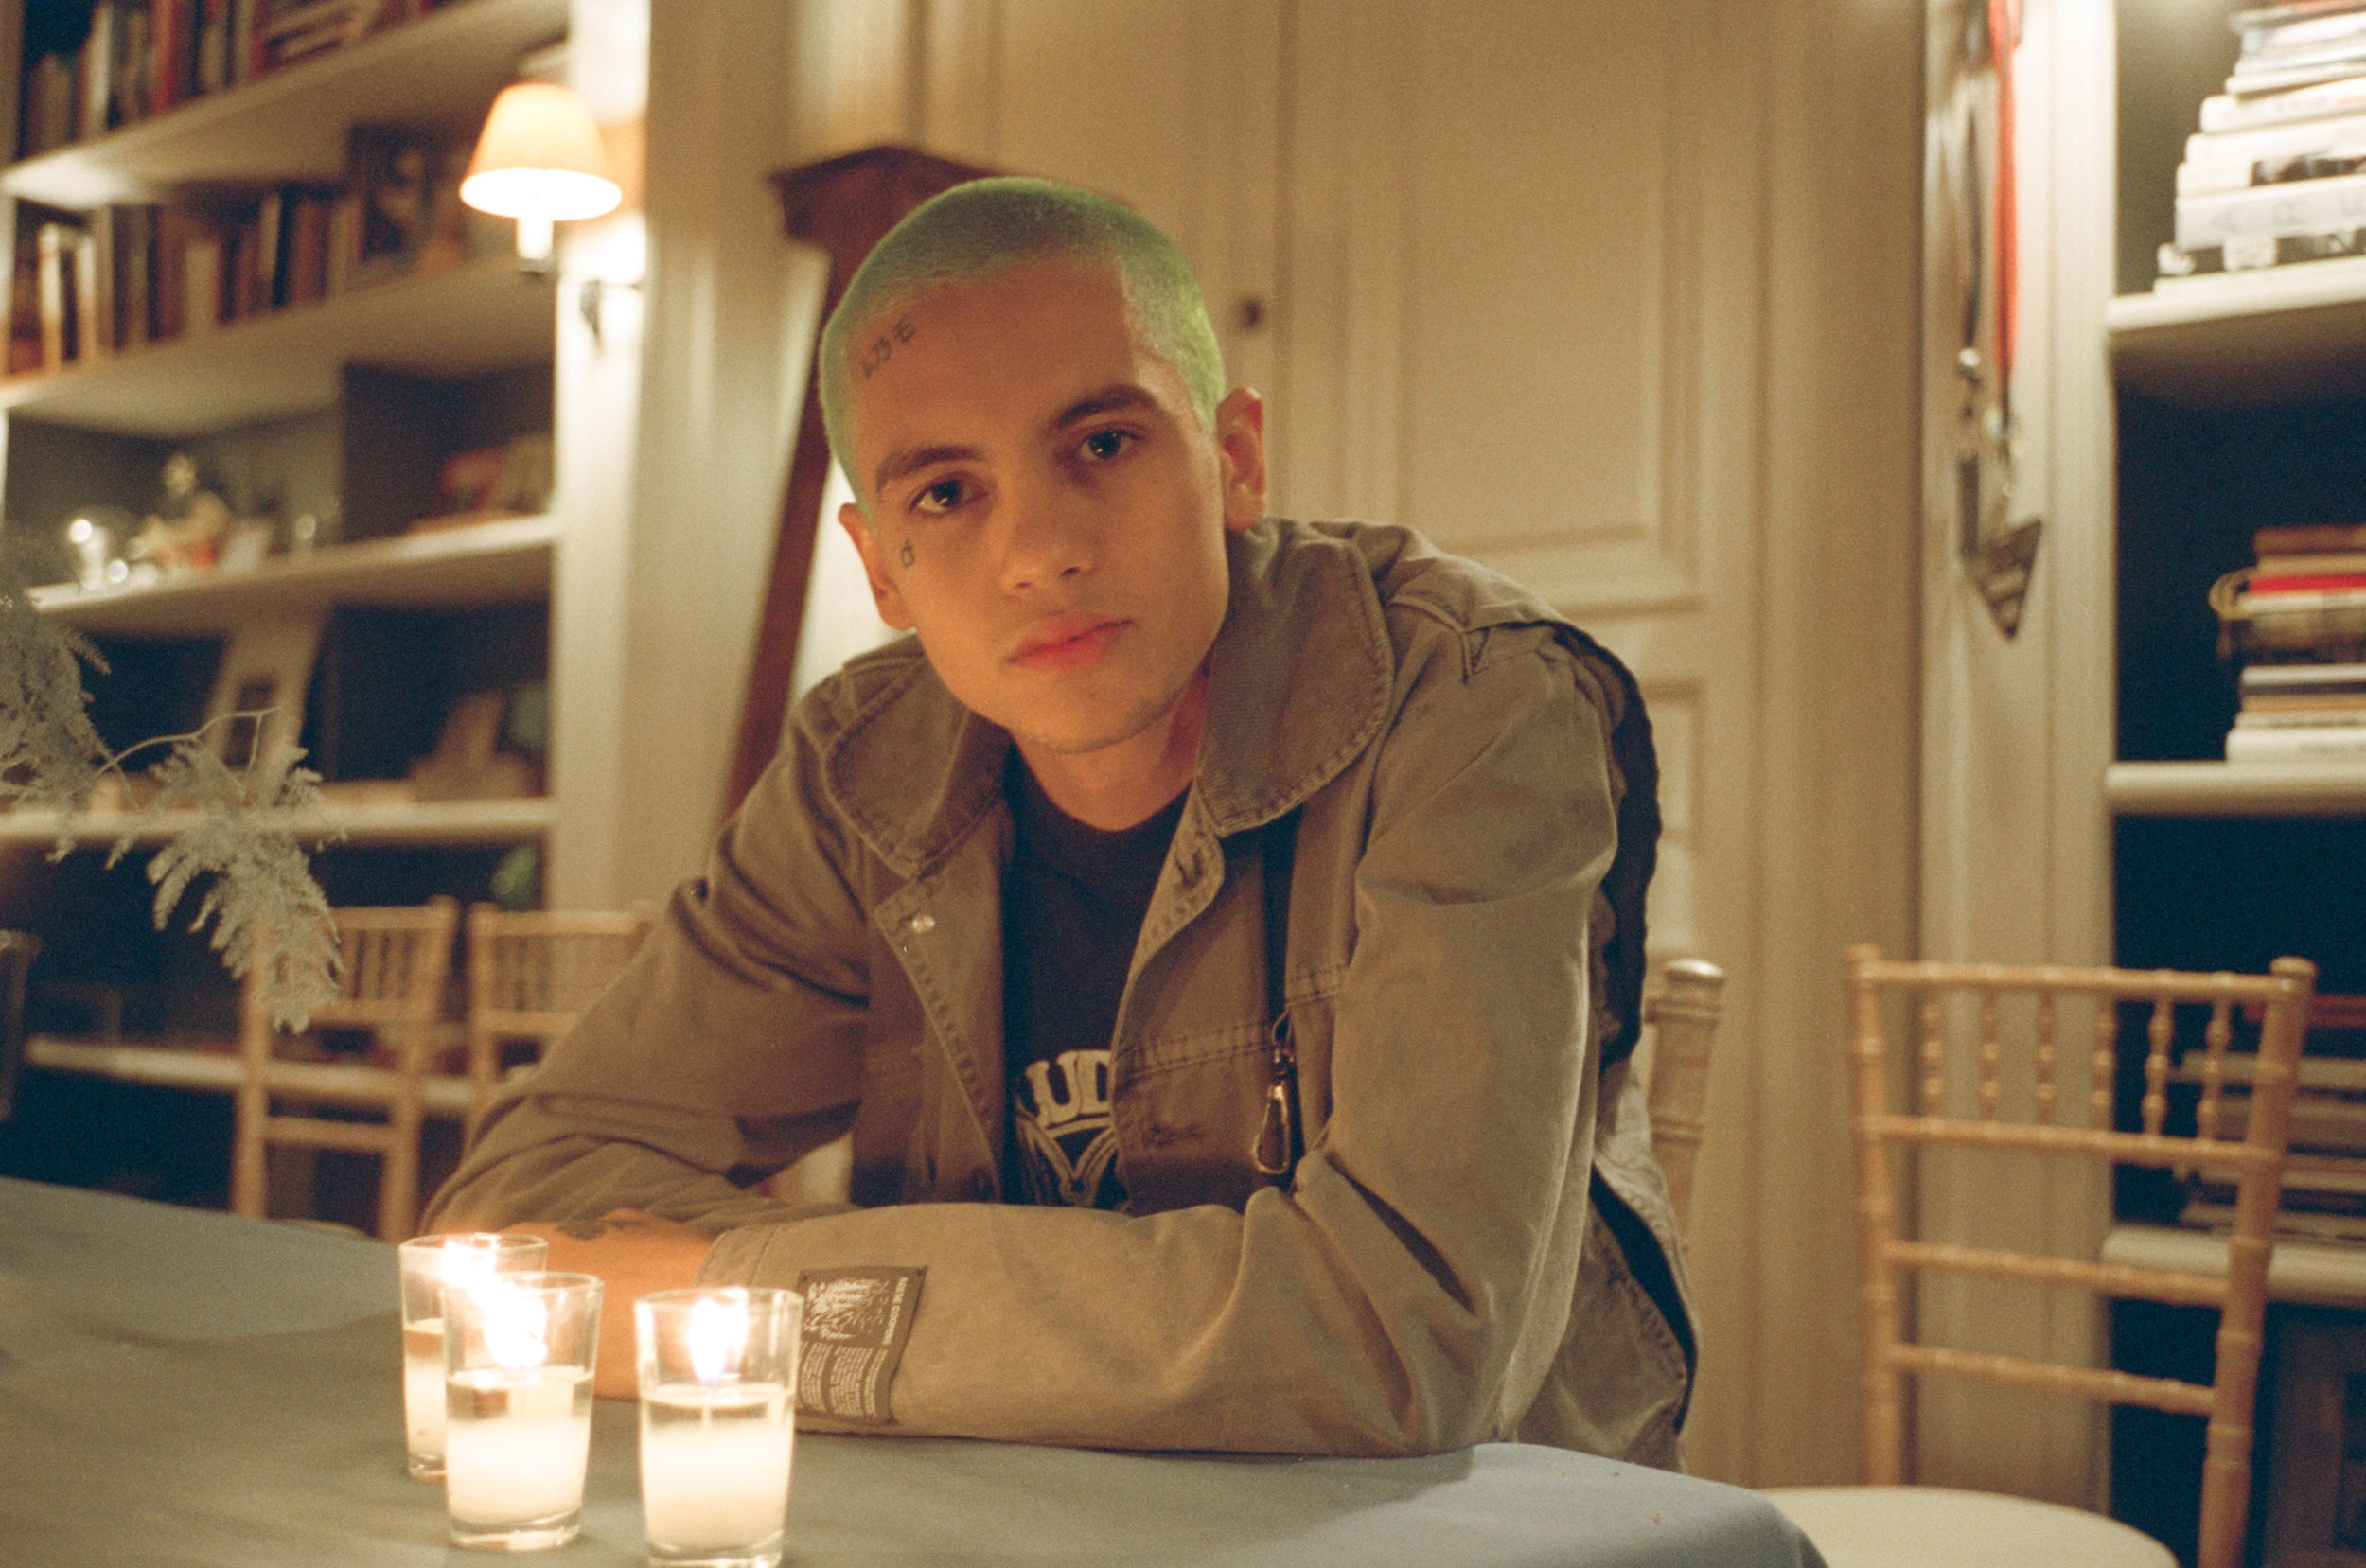 Dominic Fike at Dior party.